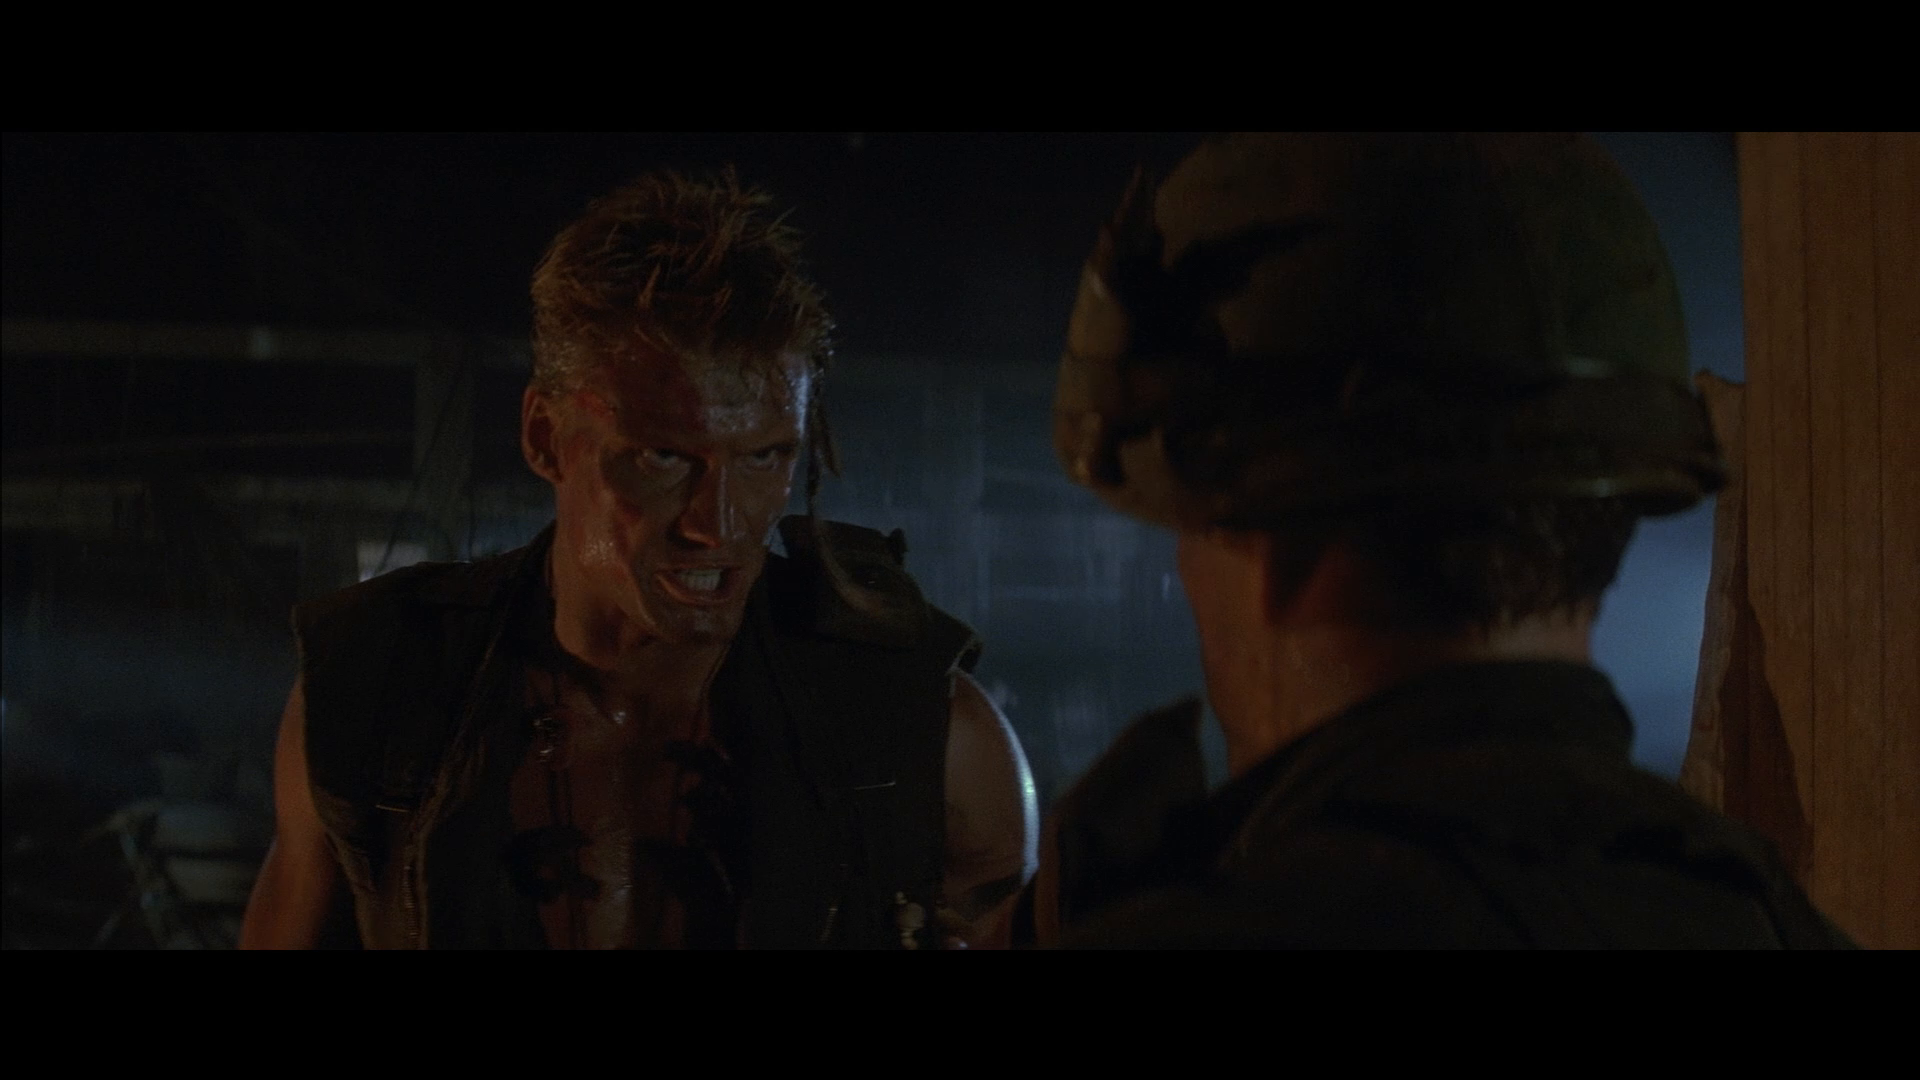 Download Universal Soldier 1992 REMASTERED 1080p BluRay REMUX AVC DTS-HD M Torrent